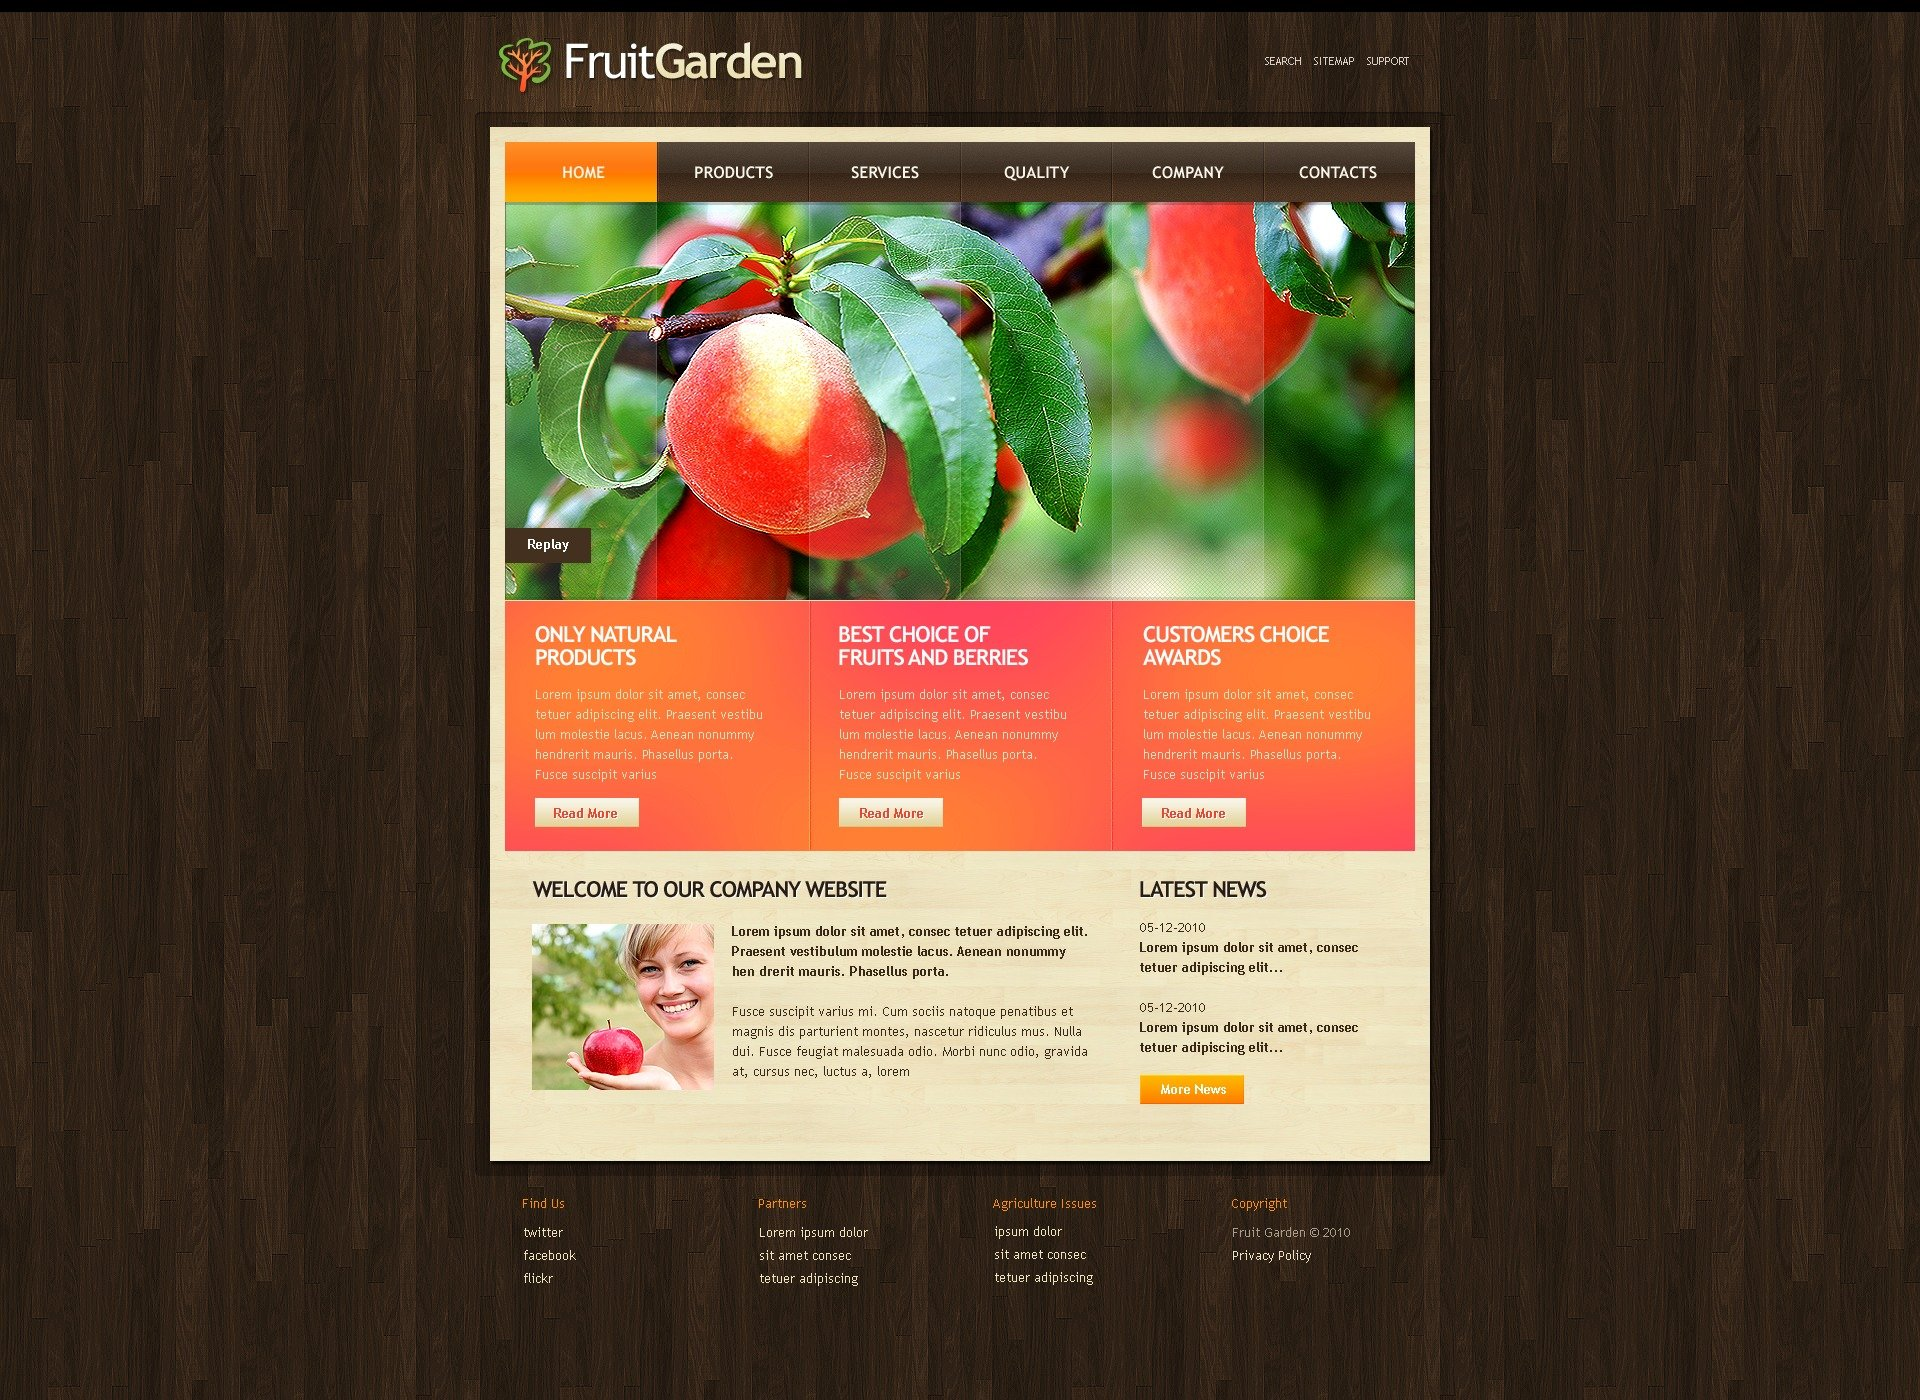 The Fruit Garden PSD Design 54078, one of the best PSD templates of its kind (agriculture, flash 8, wide), also known as fruit garden PSD template, agriculture company PSD template, business PSD template, grain-crops PSD template, cereals PSD template, field PSD template, combine PSD template, harvest PSD template, farming PSD template, plants PSD template, services PSD template, products solutions PSD template, market PSD template, delivery PSD template, resource PSD template, grassland PSD template, equipment PSD template, nitrates PSD template, fertilizer PSD template, clients PSD template, partners PSD template, innovations PSD template, support PSD template, information dealer PSD template, stocks and related with fruit garden, agriculture company, business, grain-crops, cereals, field, combine, harvest, farming, plants, services, products solutions, market, delivery, resource, grassland, equipment, nitrates, fertilizer, clients, partners, innovations, support, information dealer, stocks, etc.